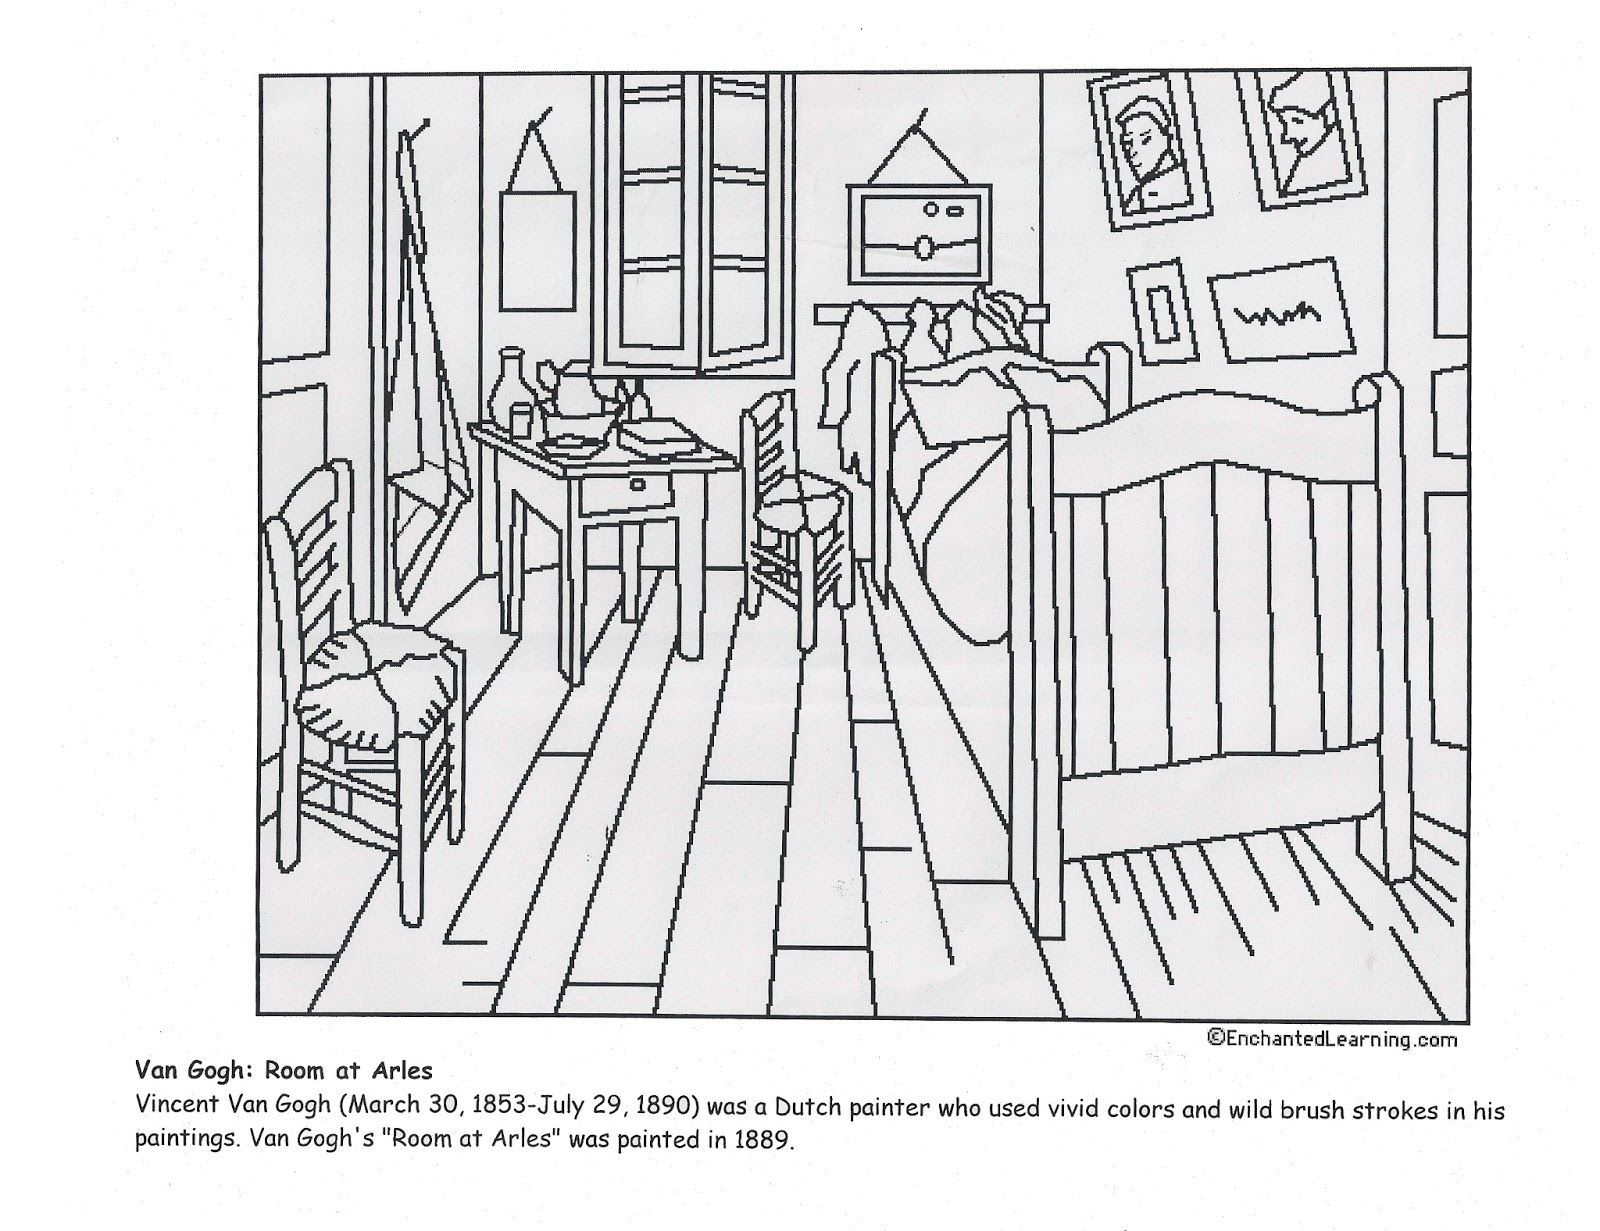 Coloring pages for bedroom - Vincent Van Gogh S Bedroom At Arles Coloring Page